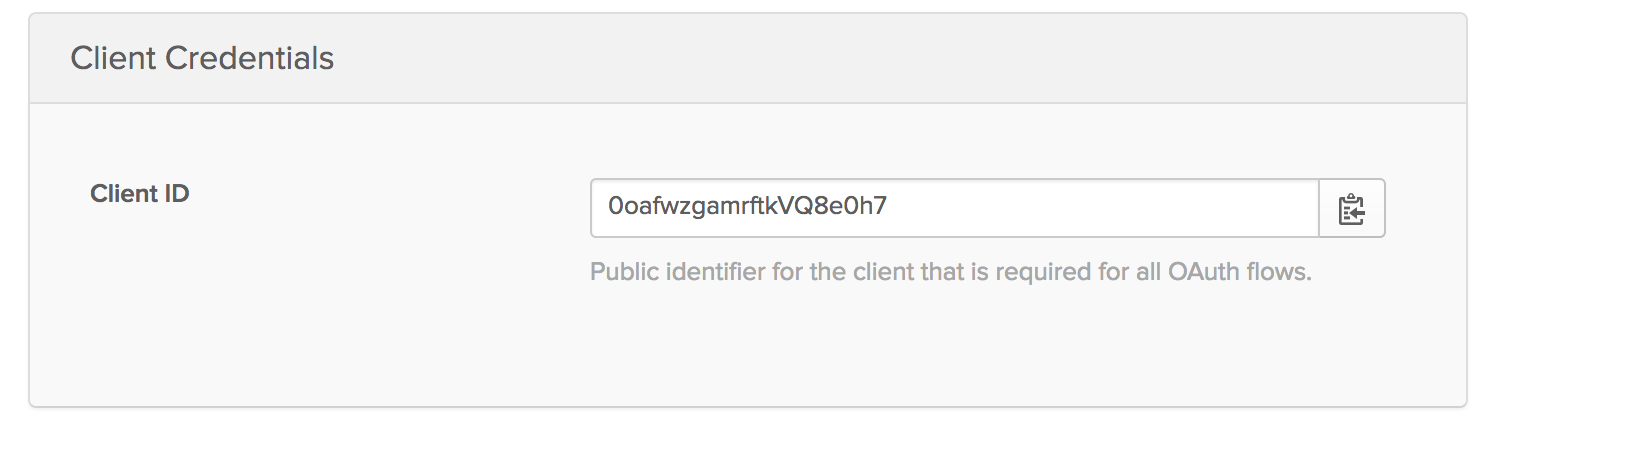 Okta client credentials